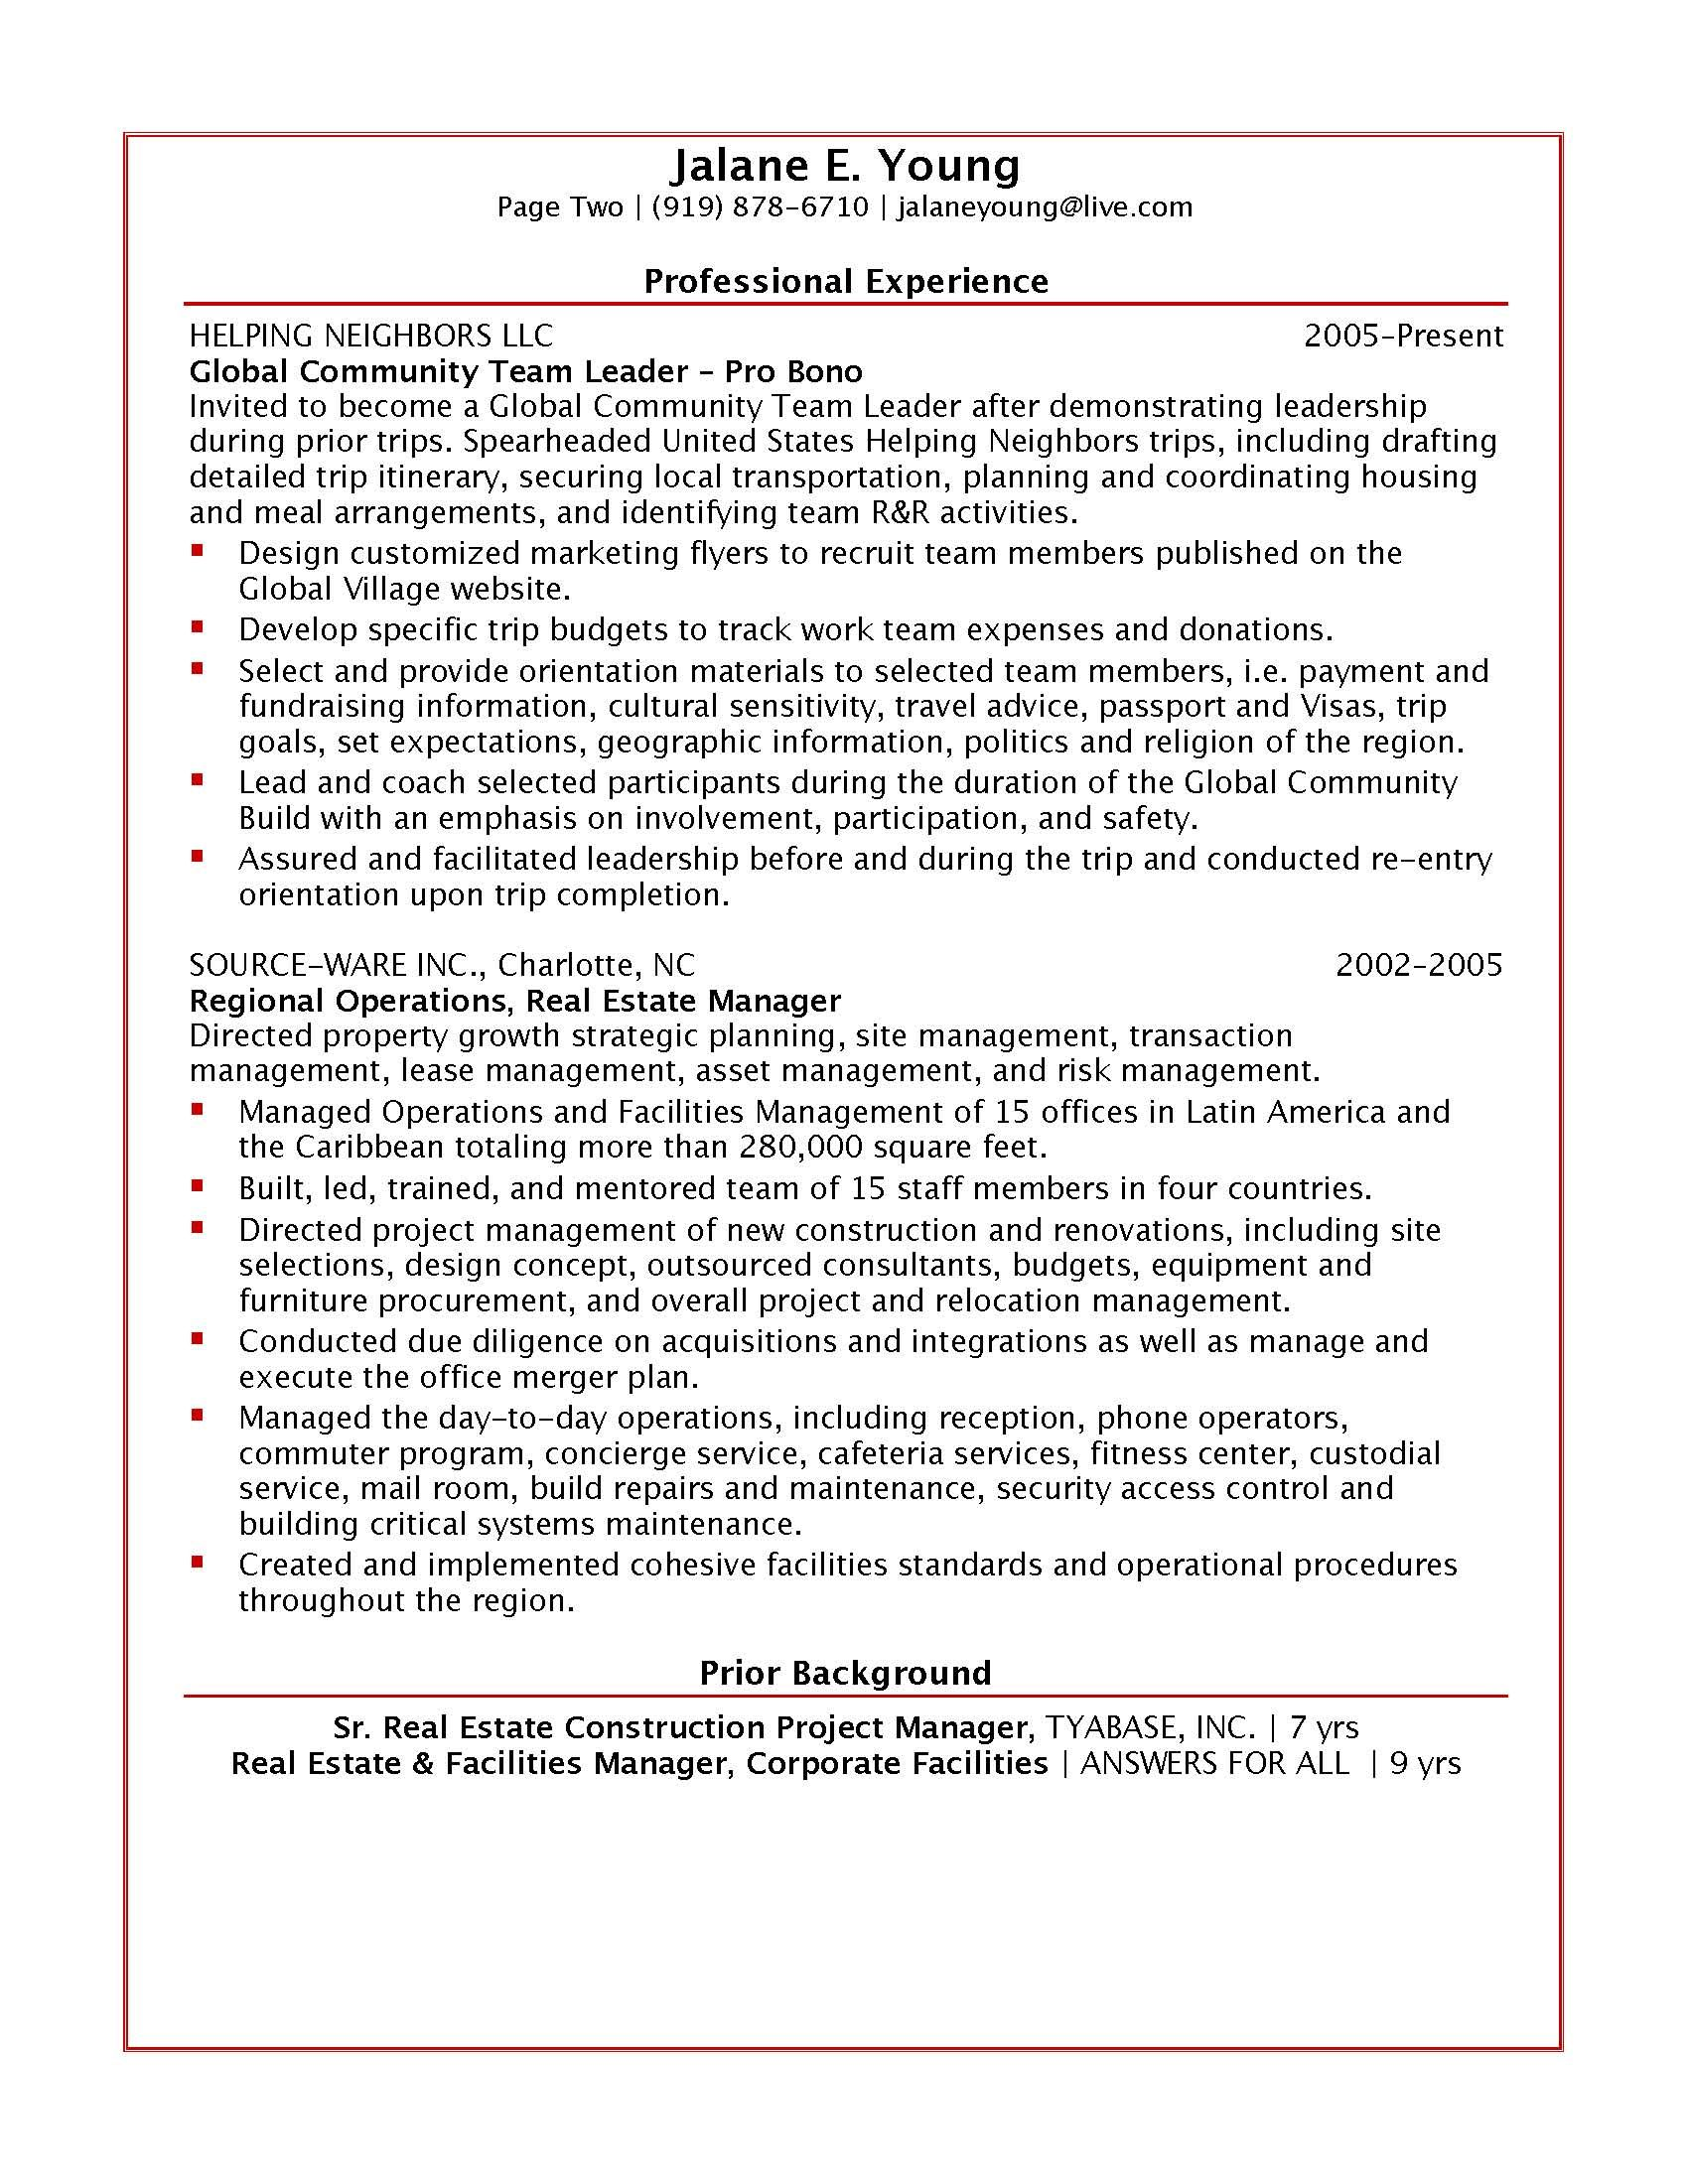 sample resume images sample resumessample resumes cover letter sample resume images sample resumessample resumes cover letter examples